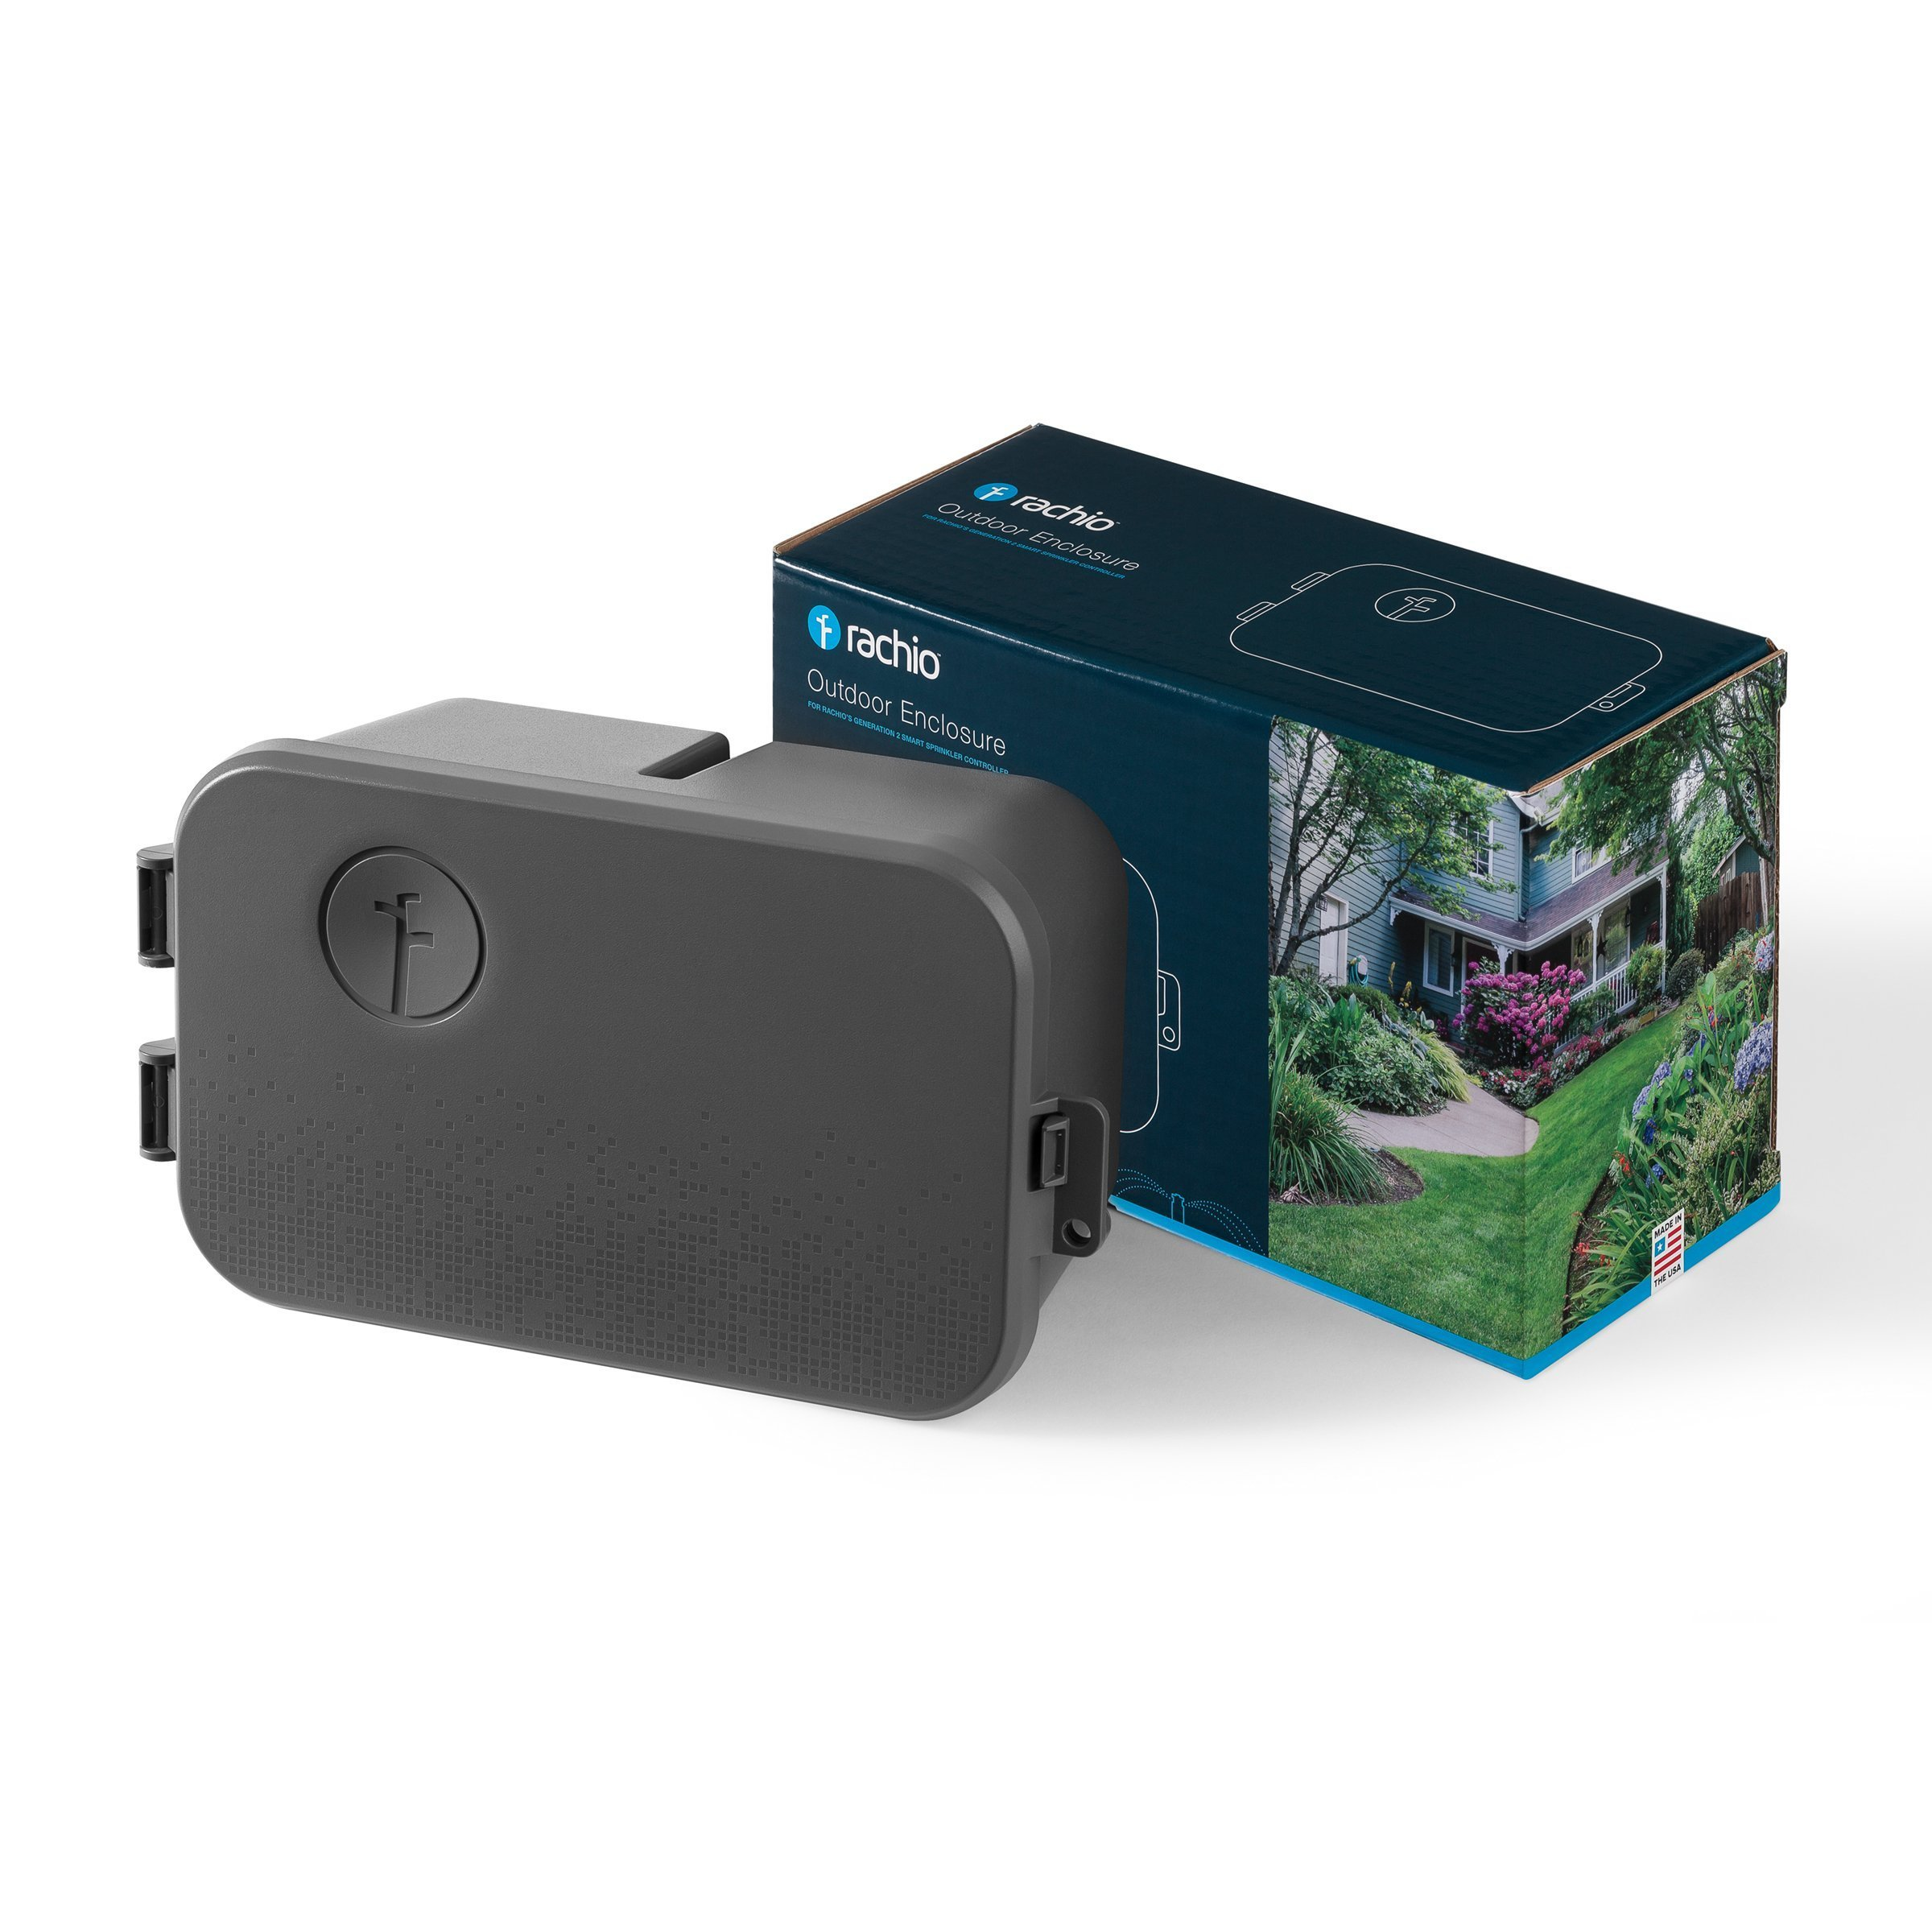 Rachio Outdoor Enclosure, for Rachio 3 and Generation 2 Smart Sprinkler Controller